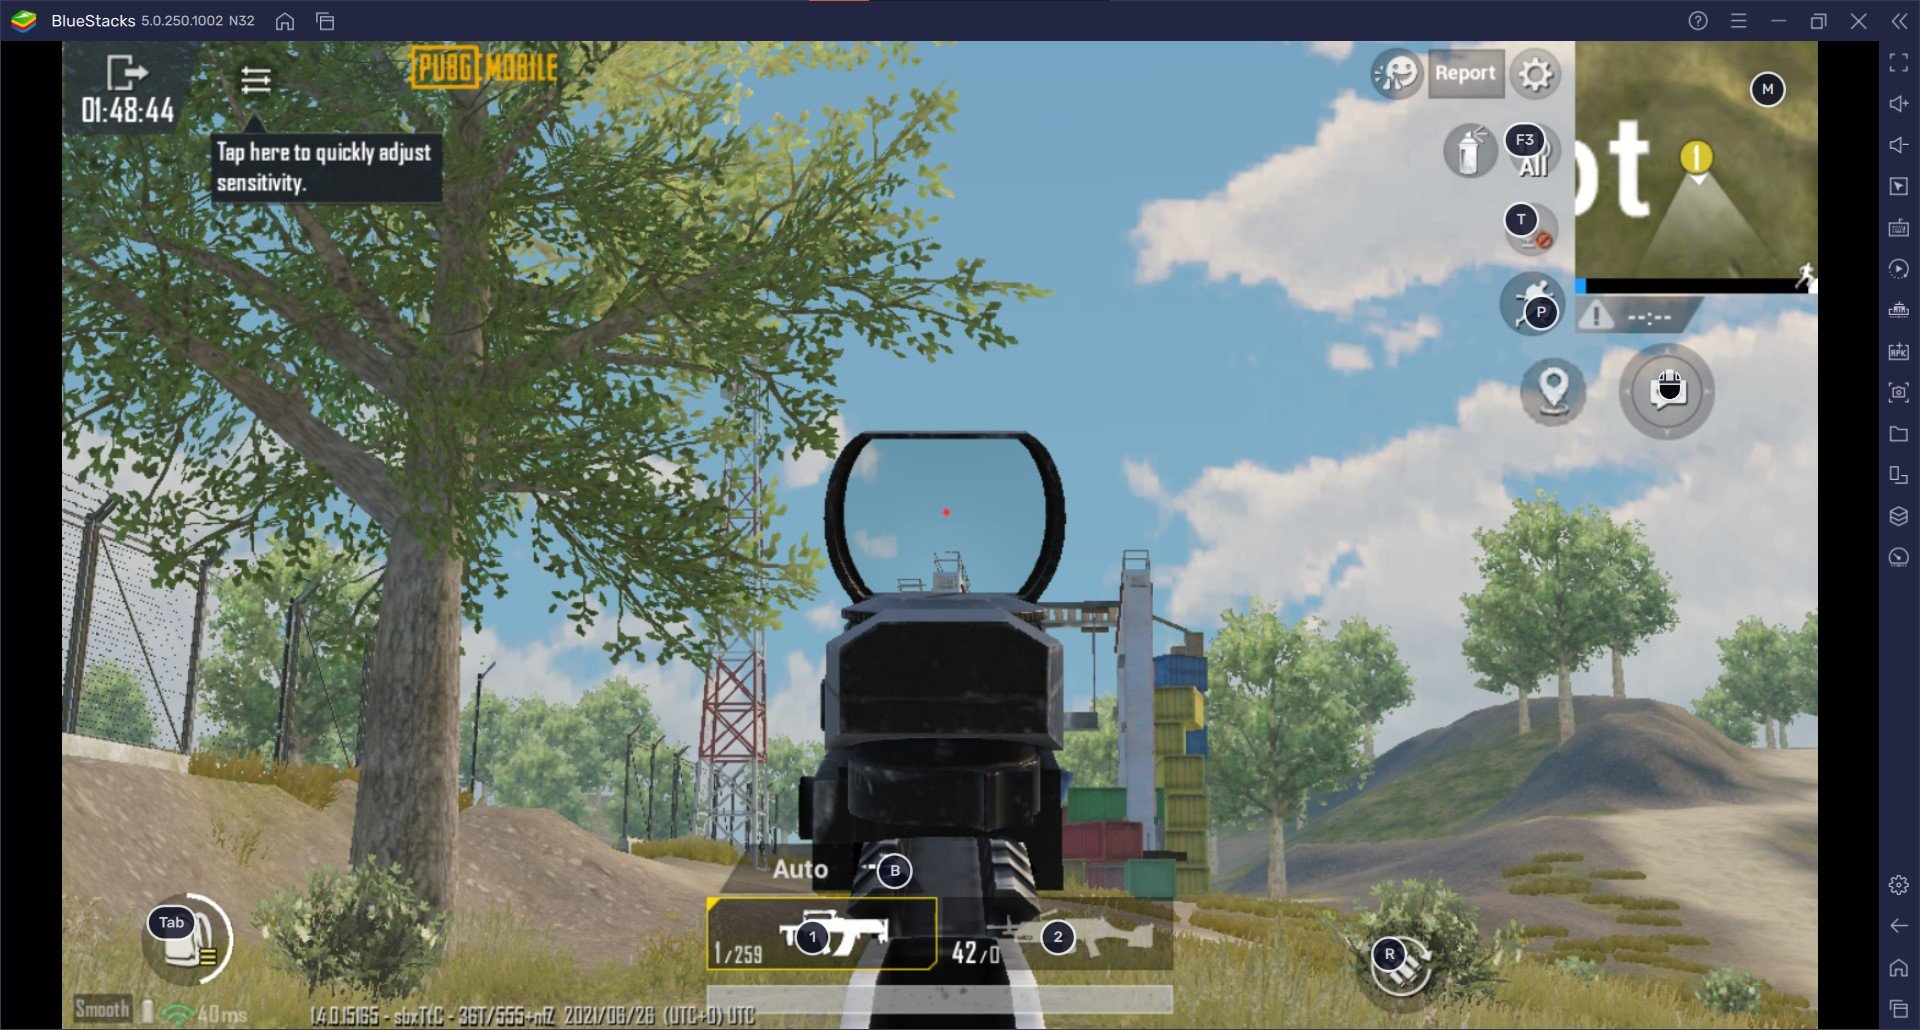 PUBG Mobile Recoil Control Guide: BlueStacks Guide to Guns with High Recoil